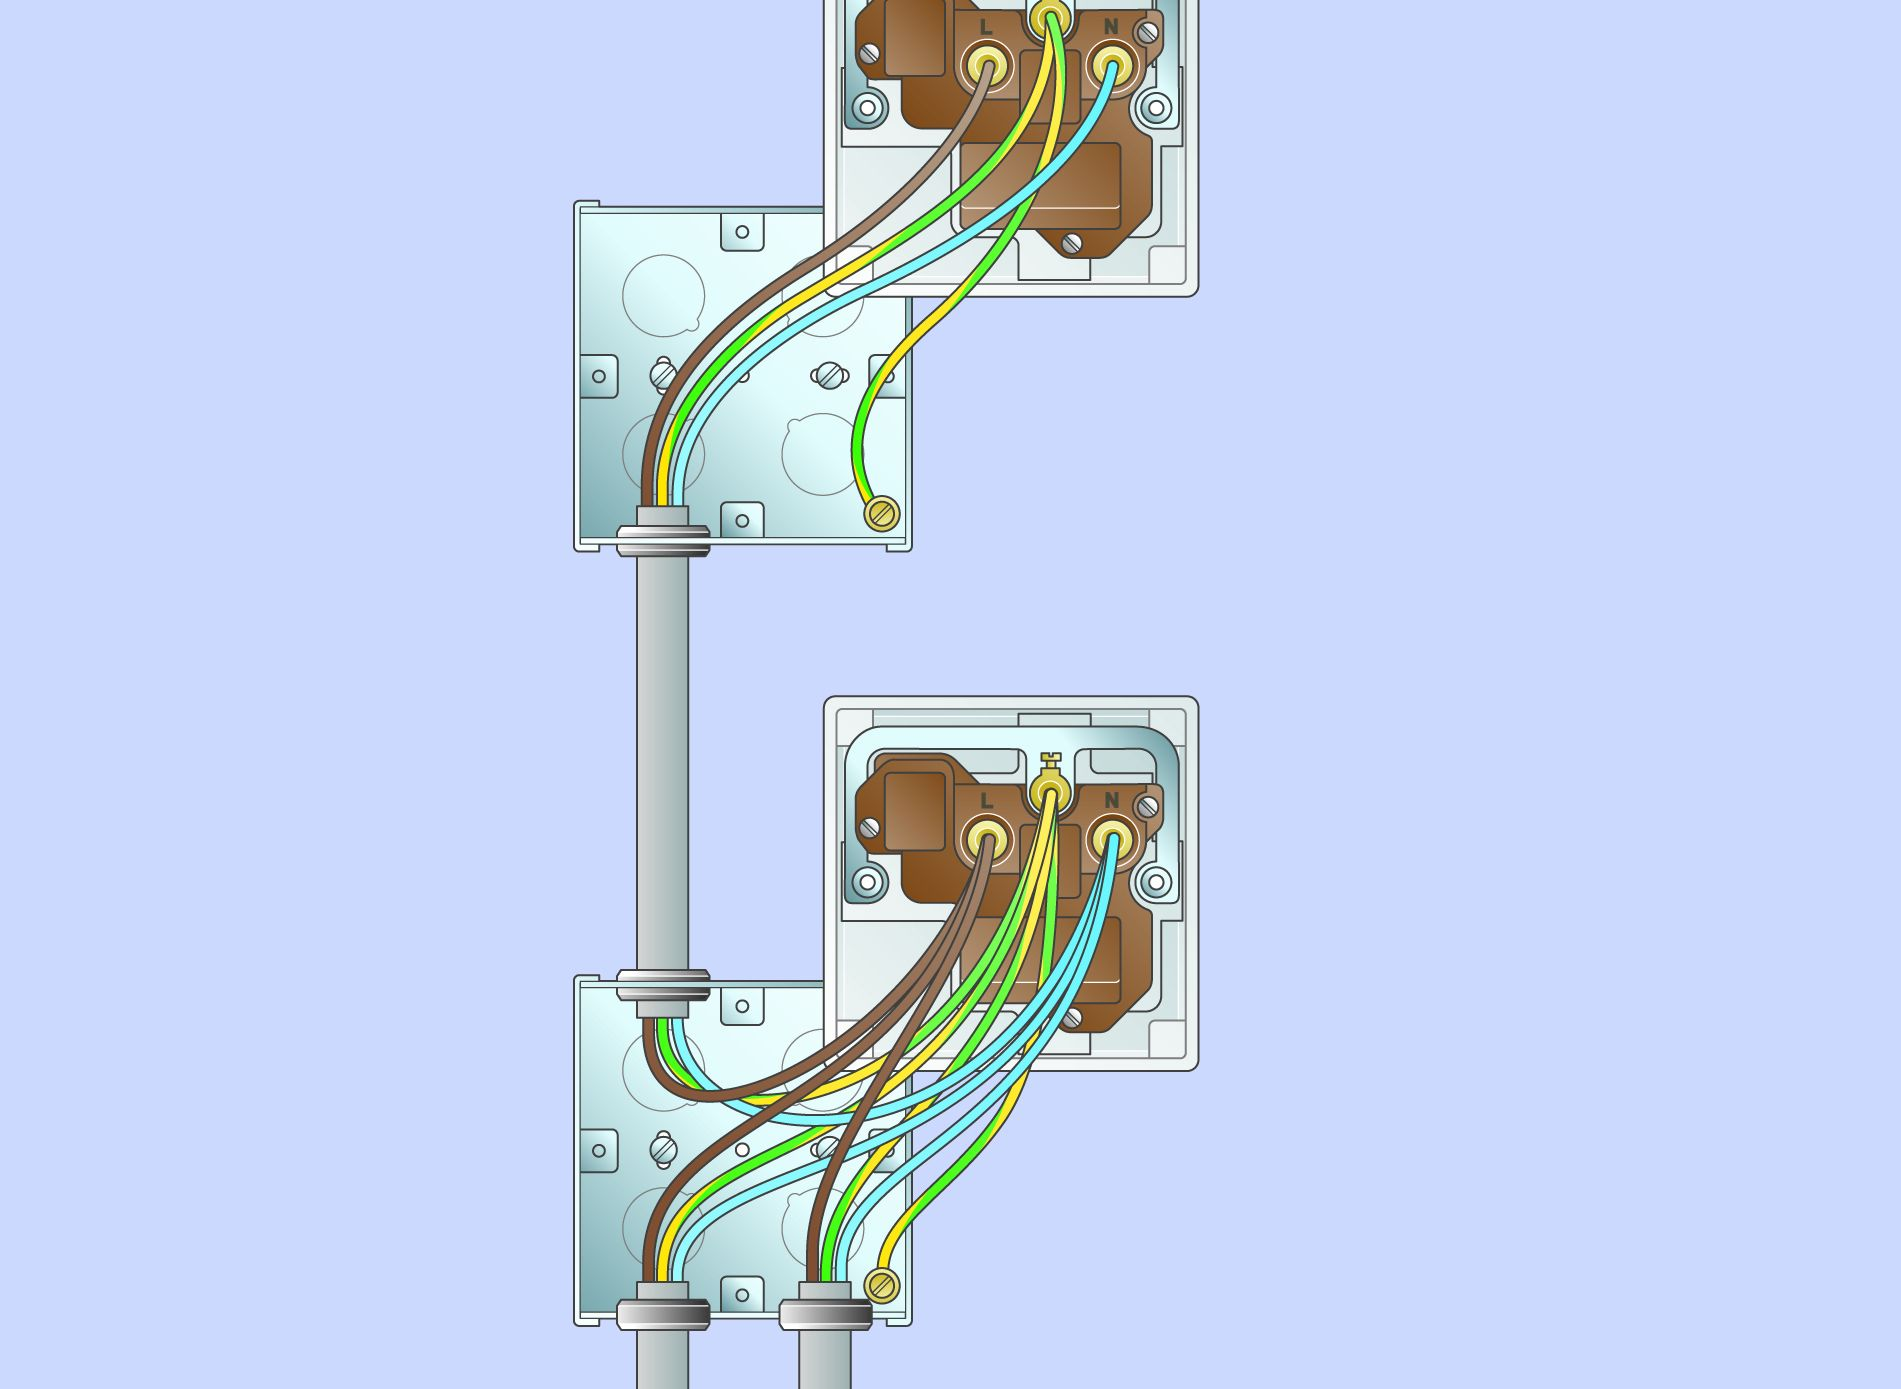 Cool Electrical Wiring How To Wire A Junction Box For Additional Sockets Wiring Cloud Tziciuggs Outletorg